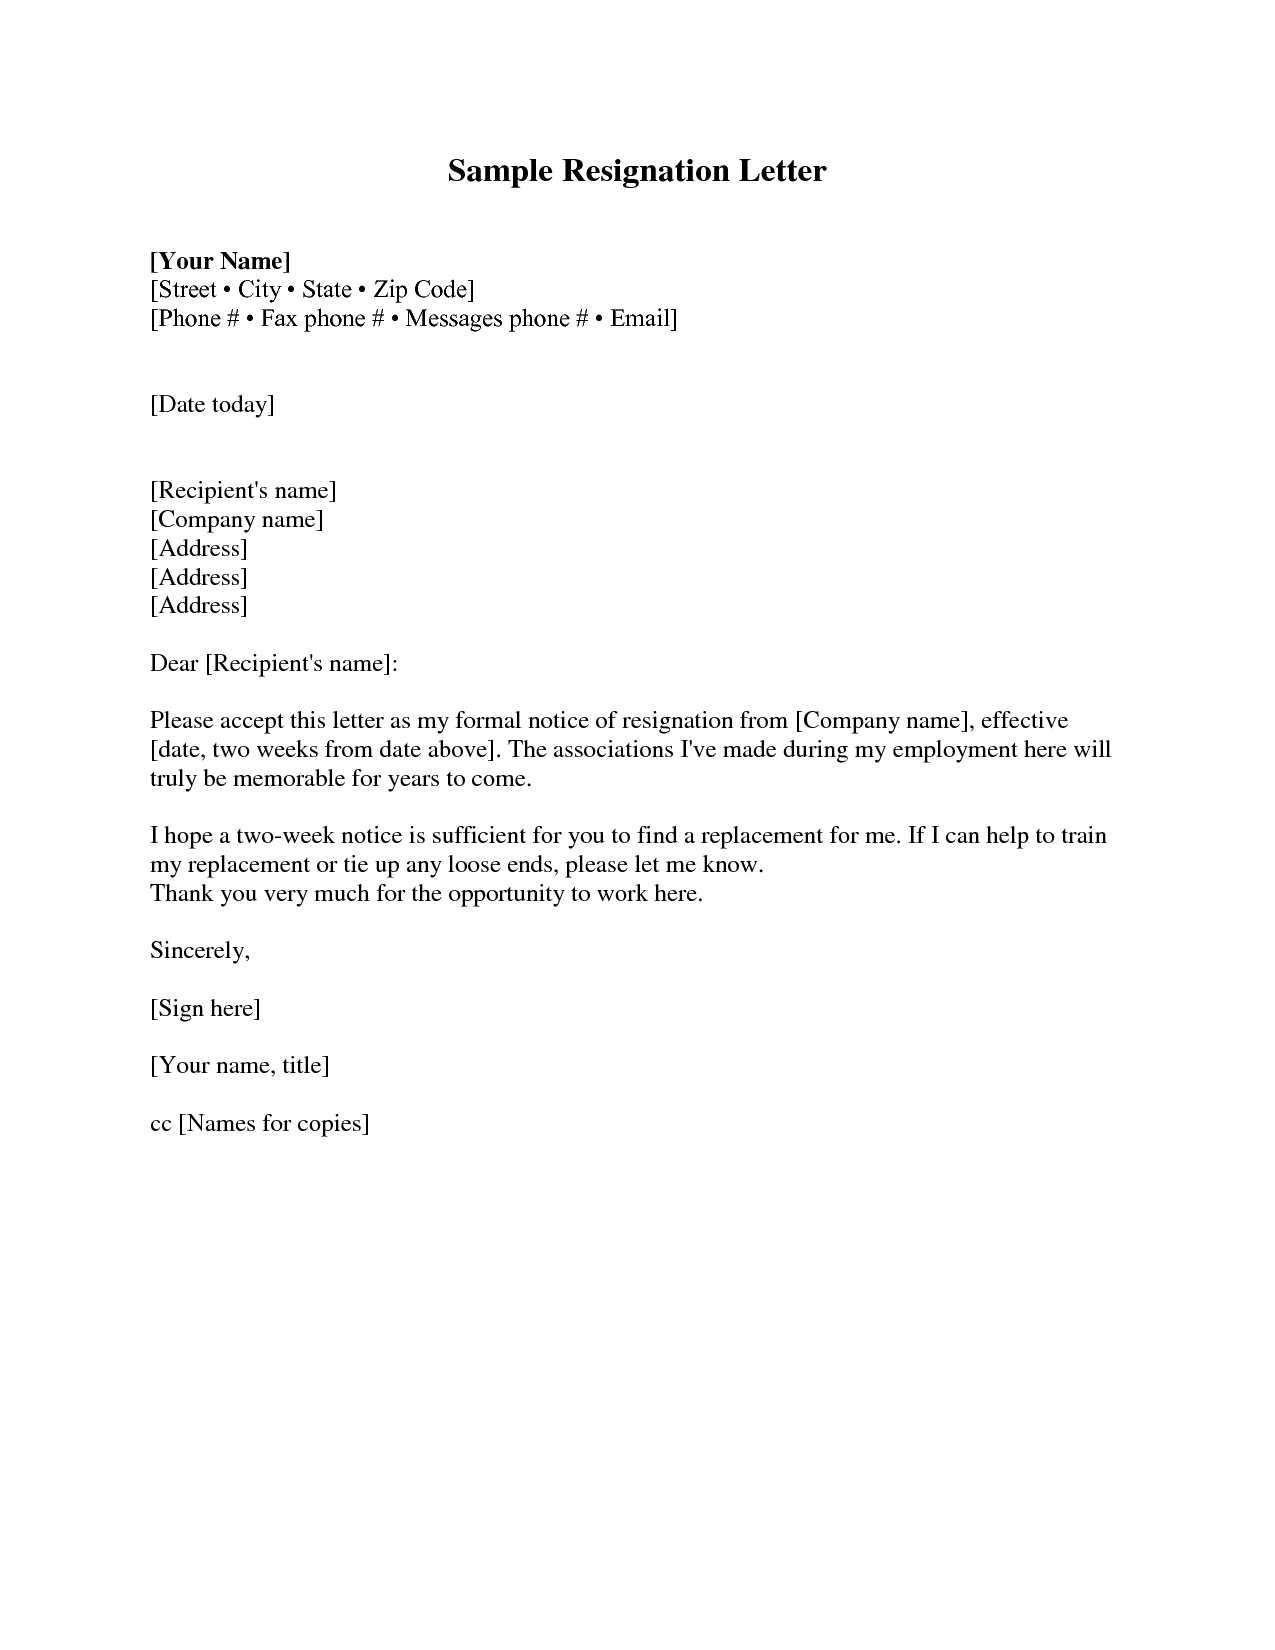 sample resignation letter 2 weeks notice koni polycode co